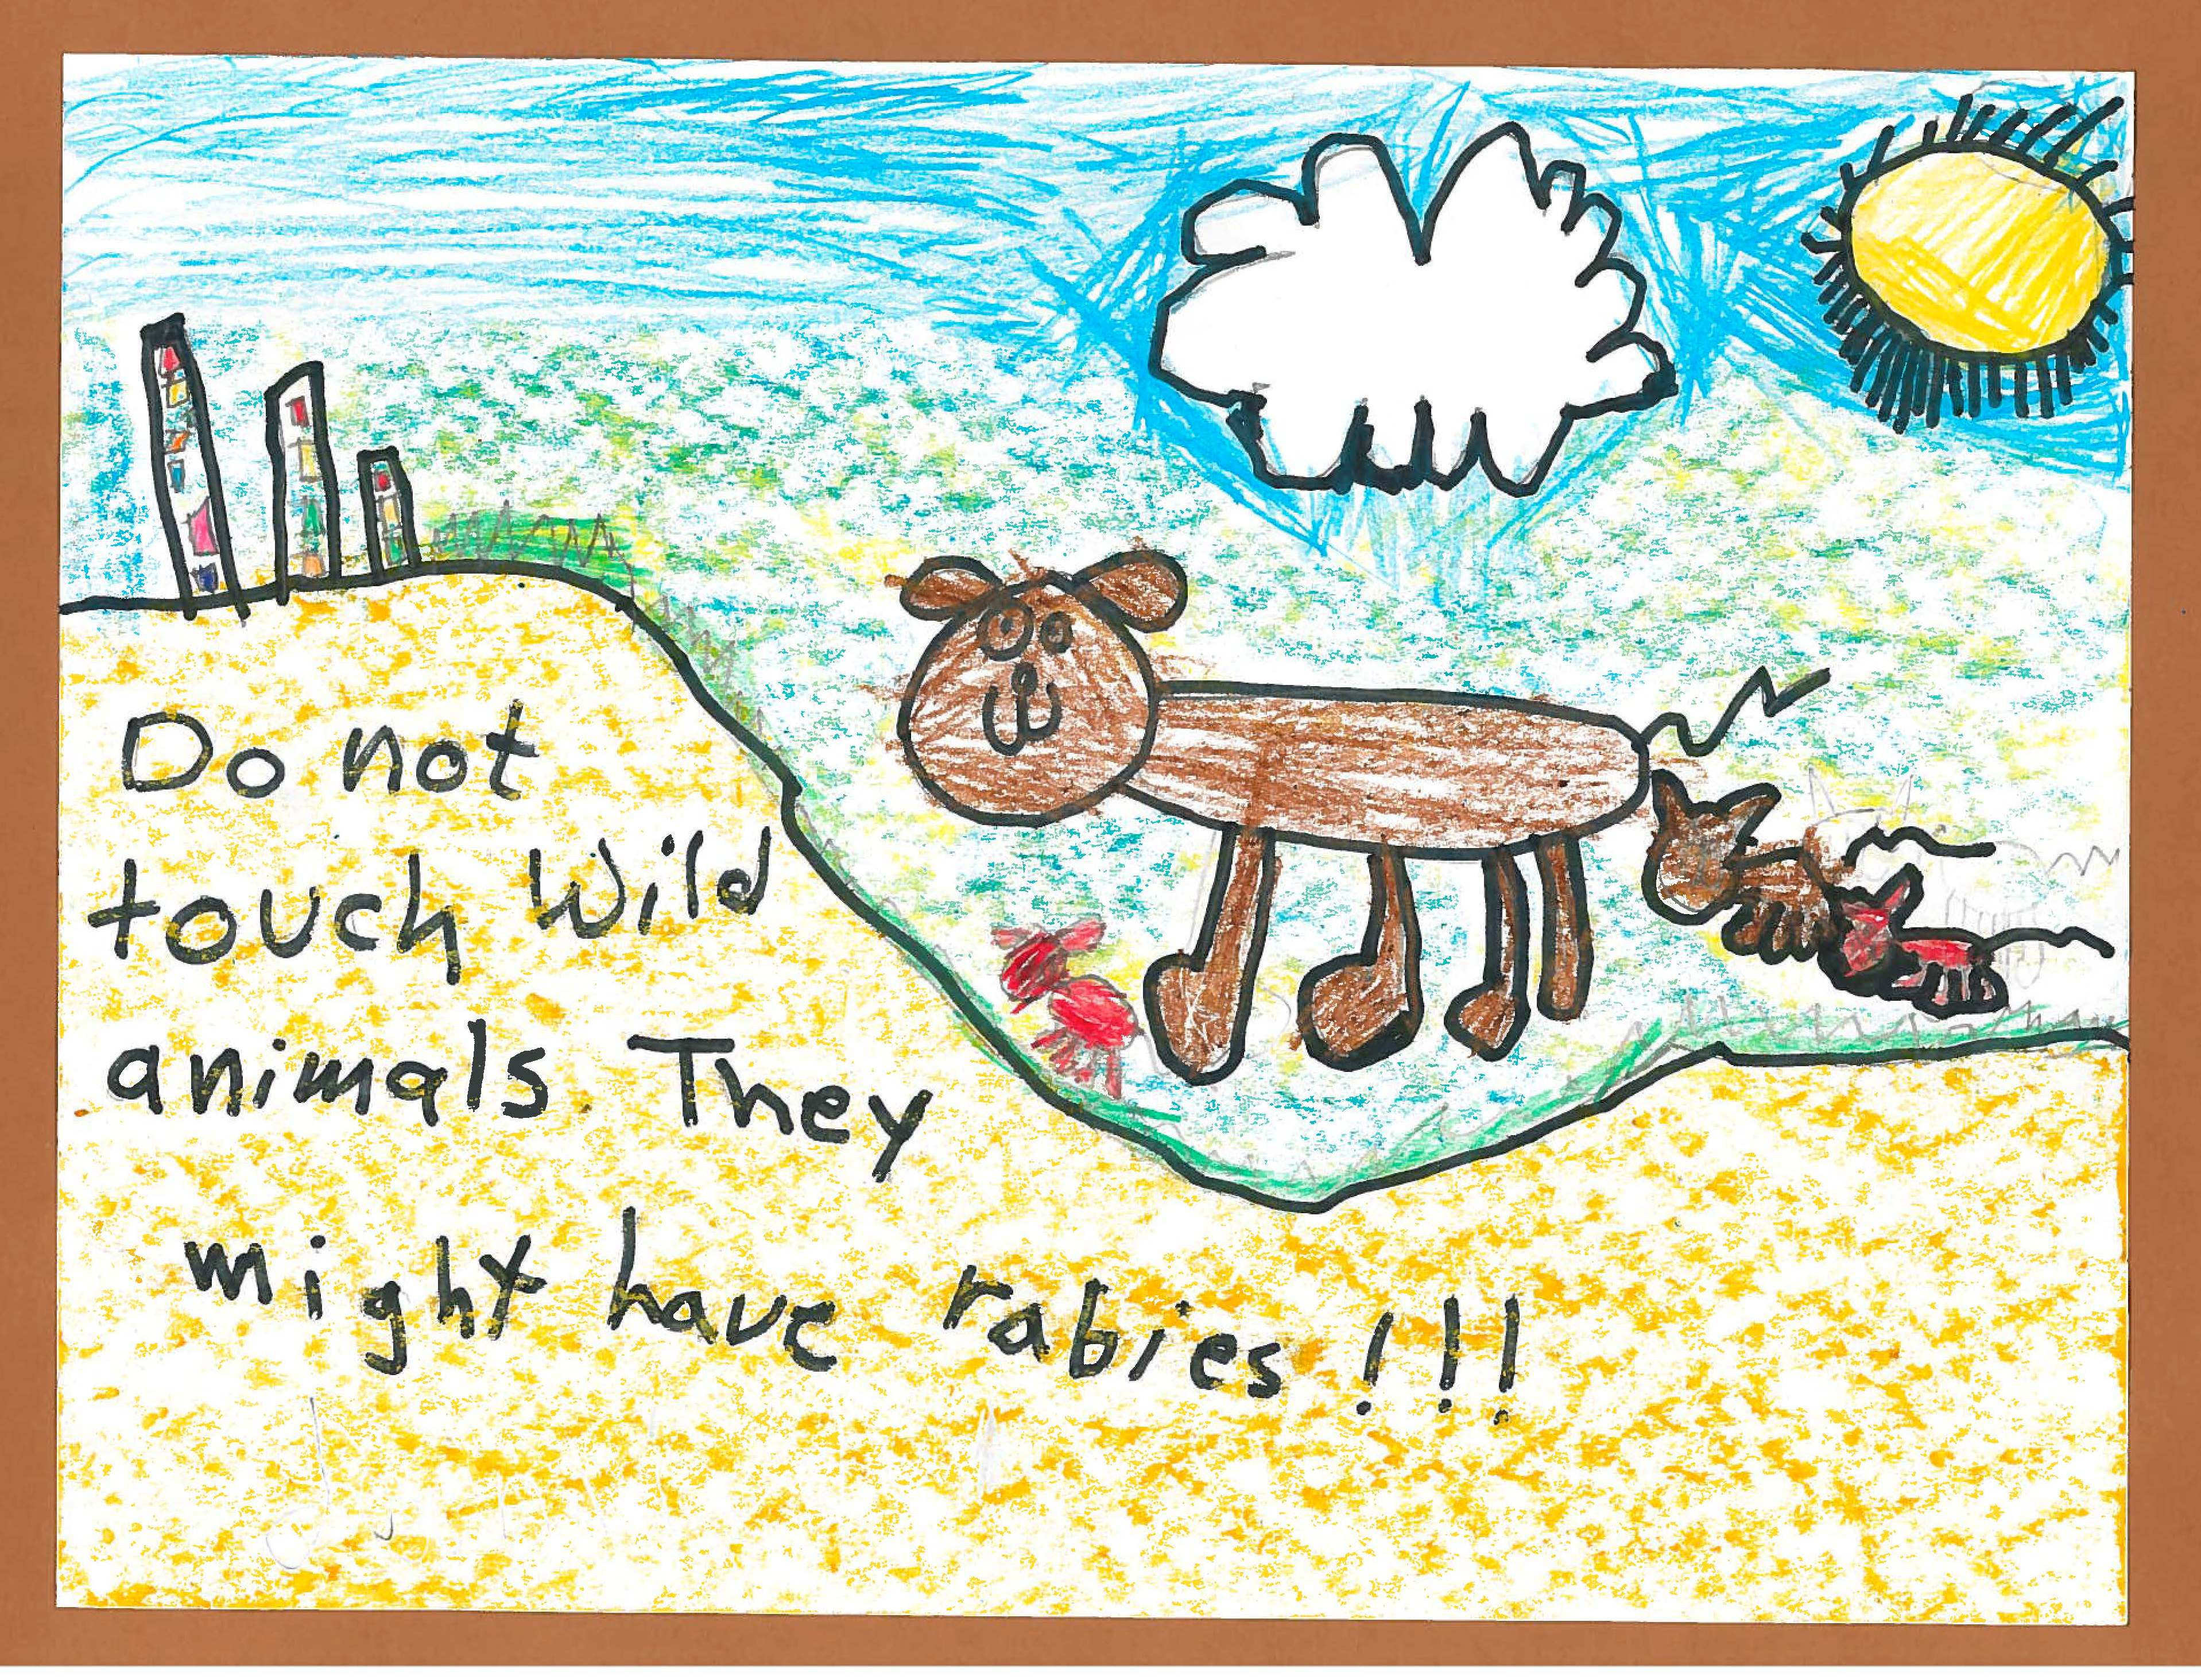 Rabies Poster Contest